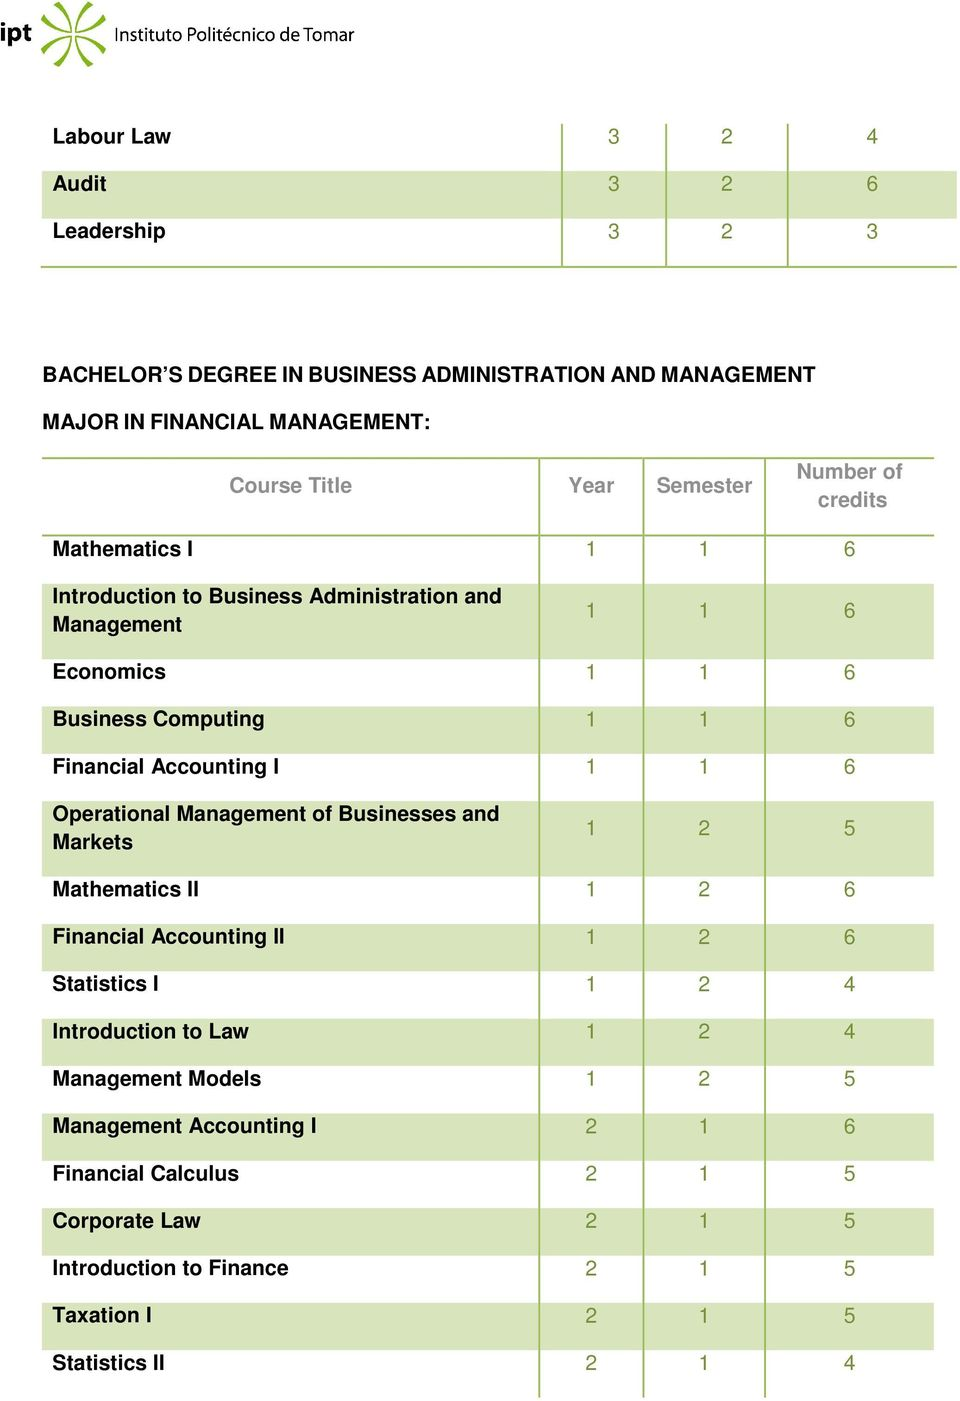 Accounting I 1 1 6 Operational Management of Businesses and Markets 1 2 5 Mathematics II 1 2 6 Financial Accounting II 1 2 6 Statistics I 1 2 4 Introduction to